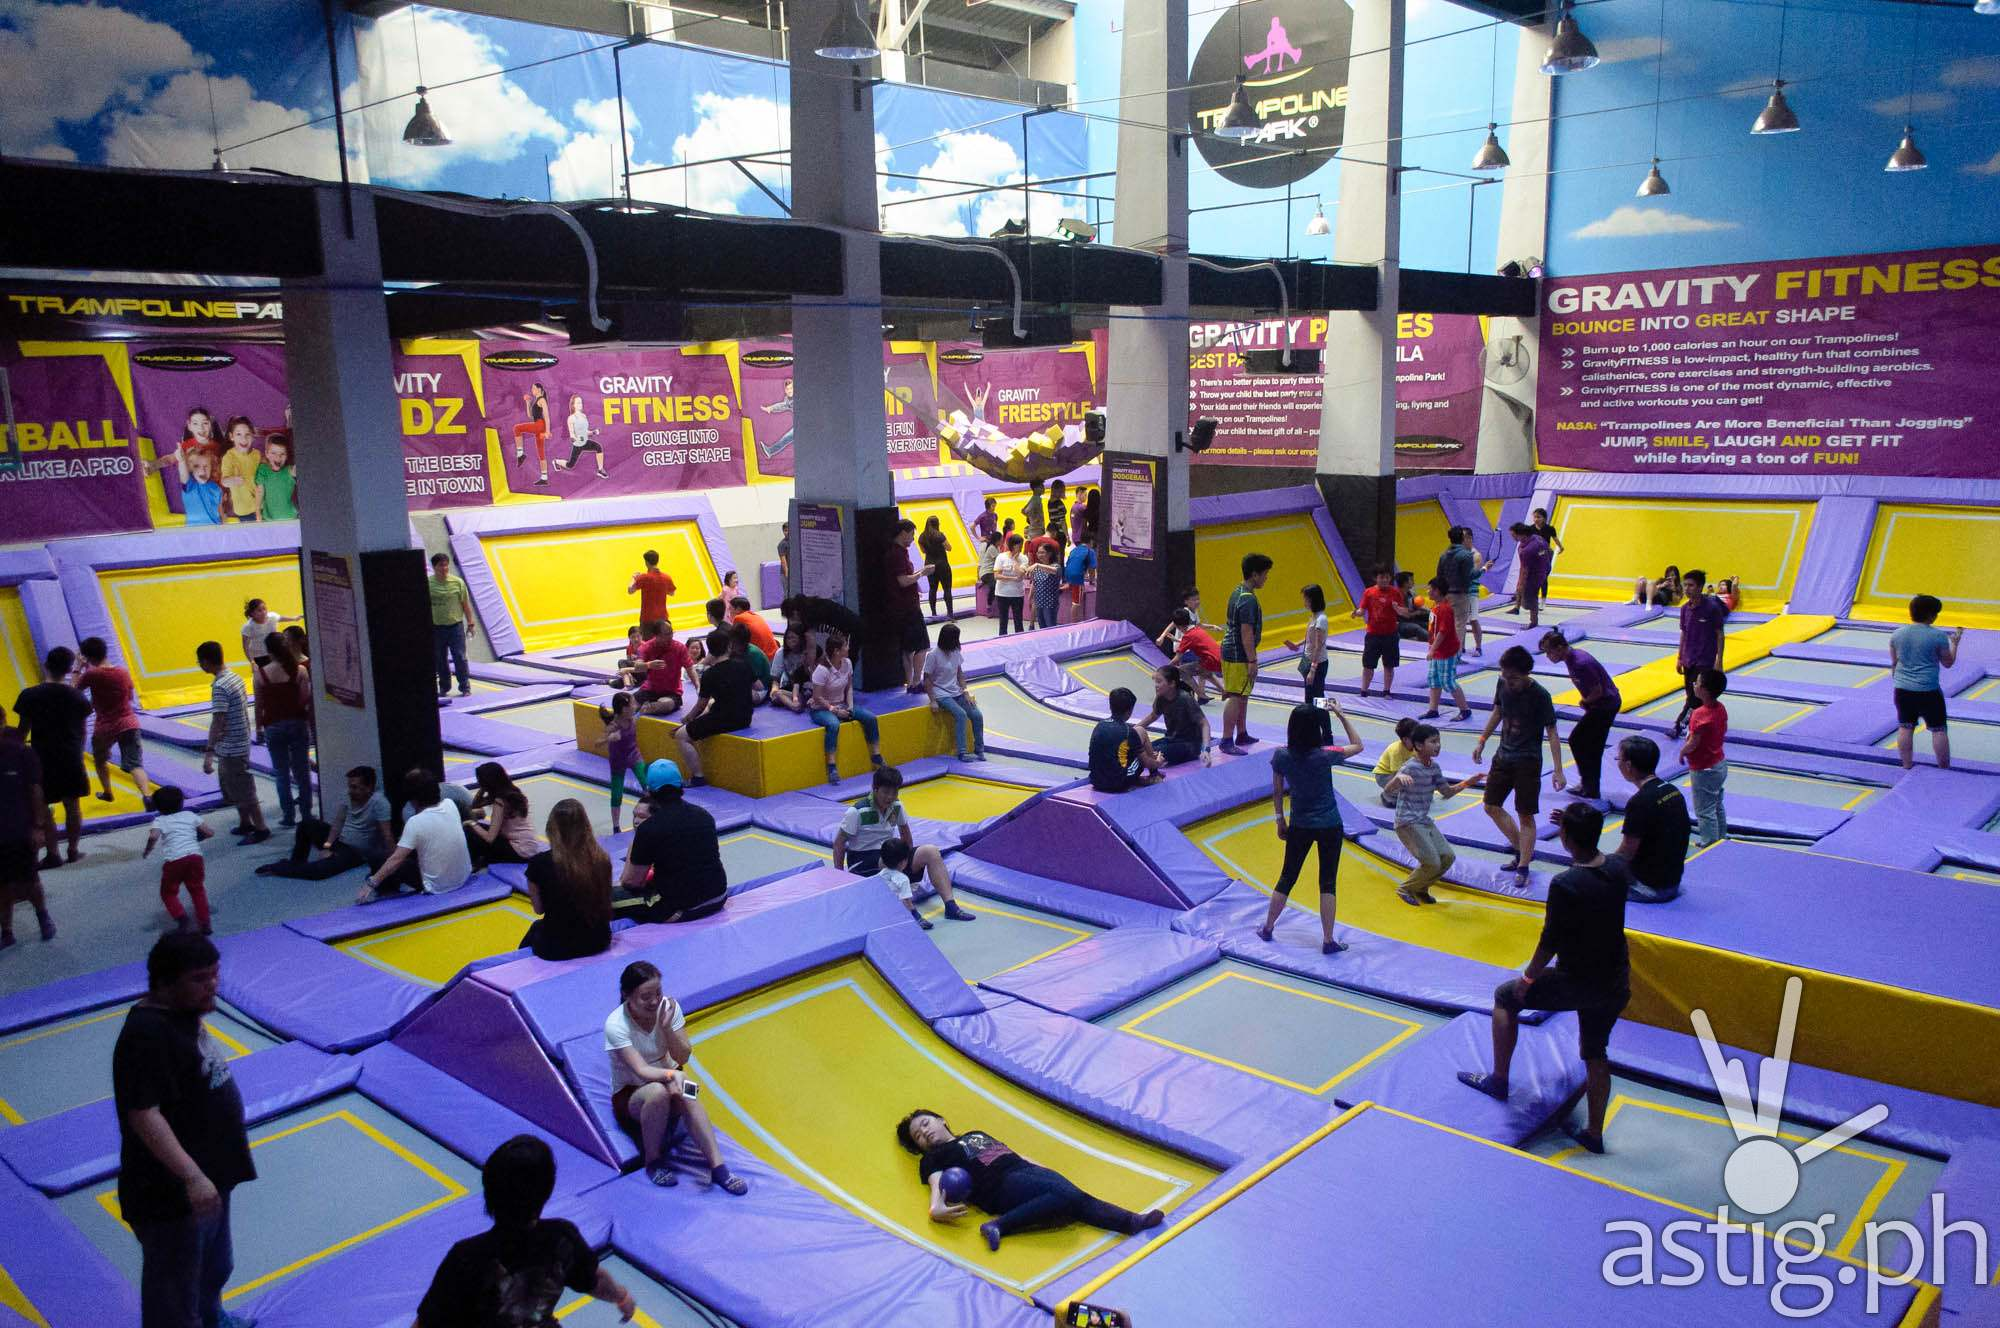 3 Reasons Why You Should Try Trampoline Park Philippines